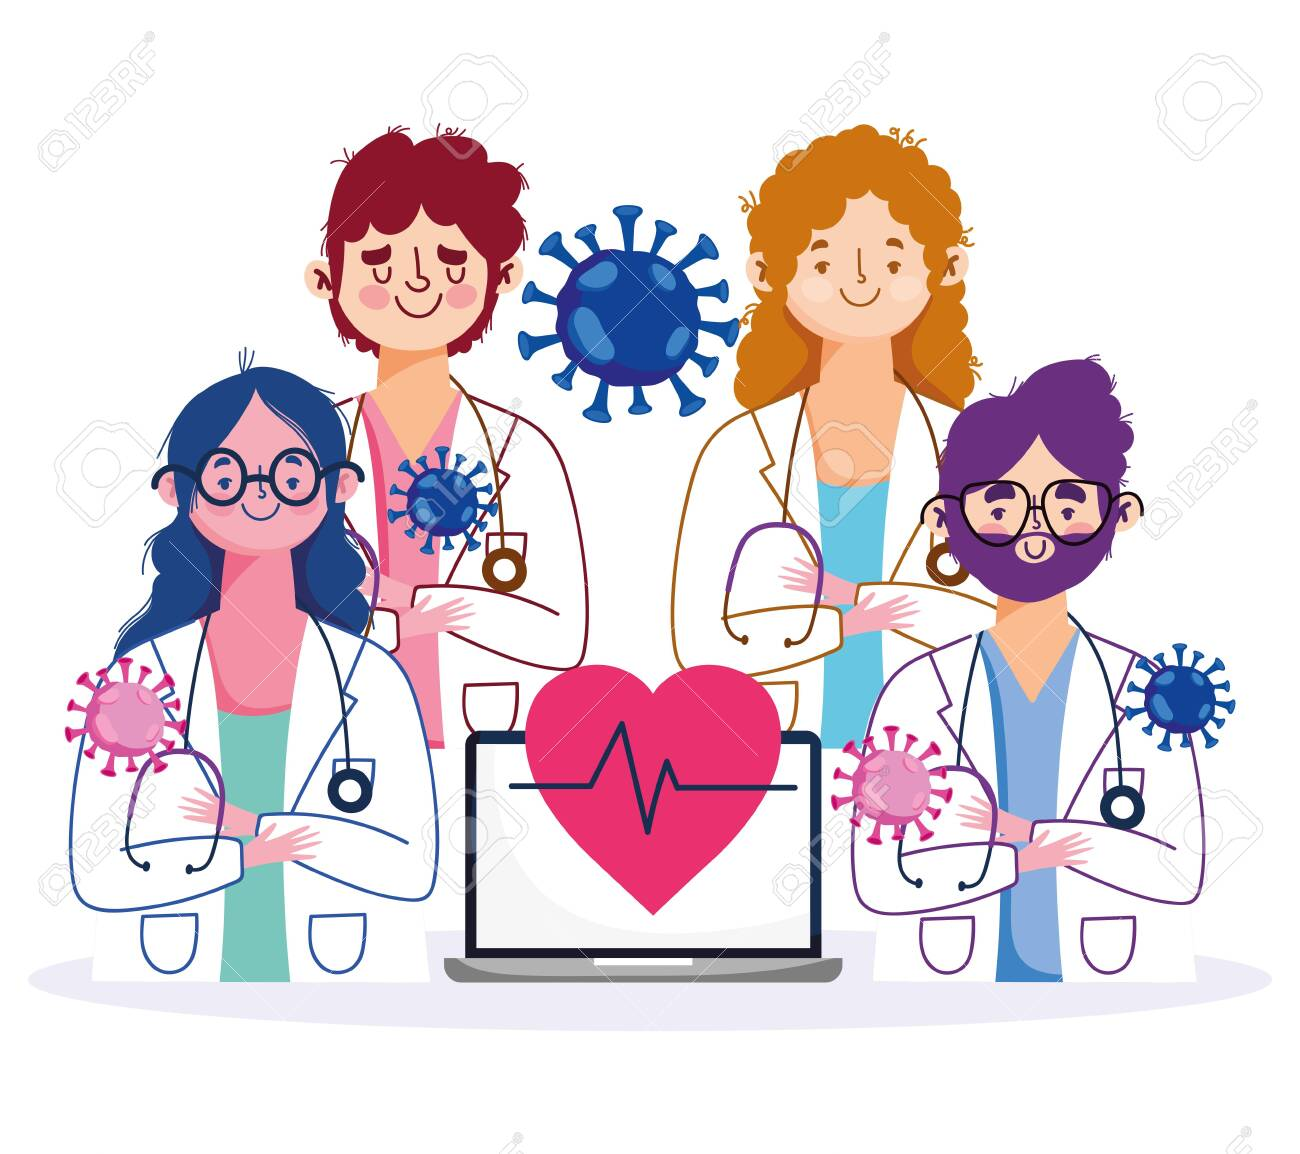 online health, staff female and male doctors with laptop and stethoscope characters vector illustration covid 19 pandemic - 143200403